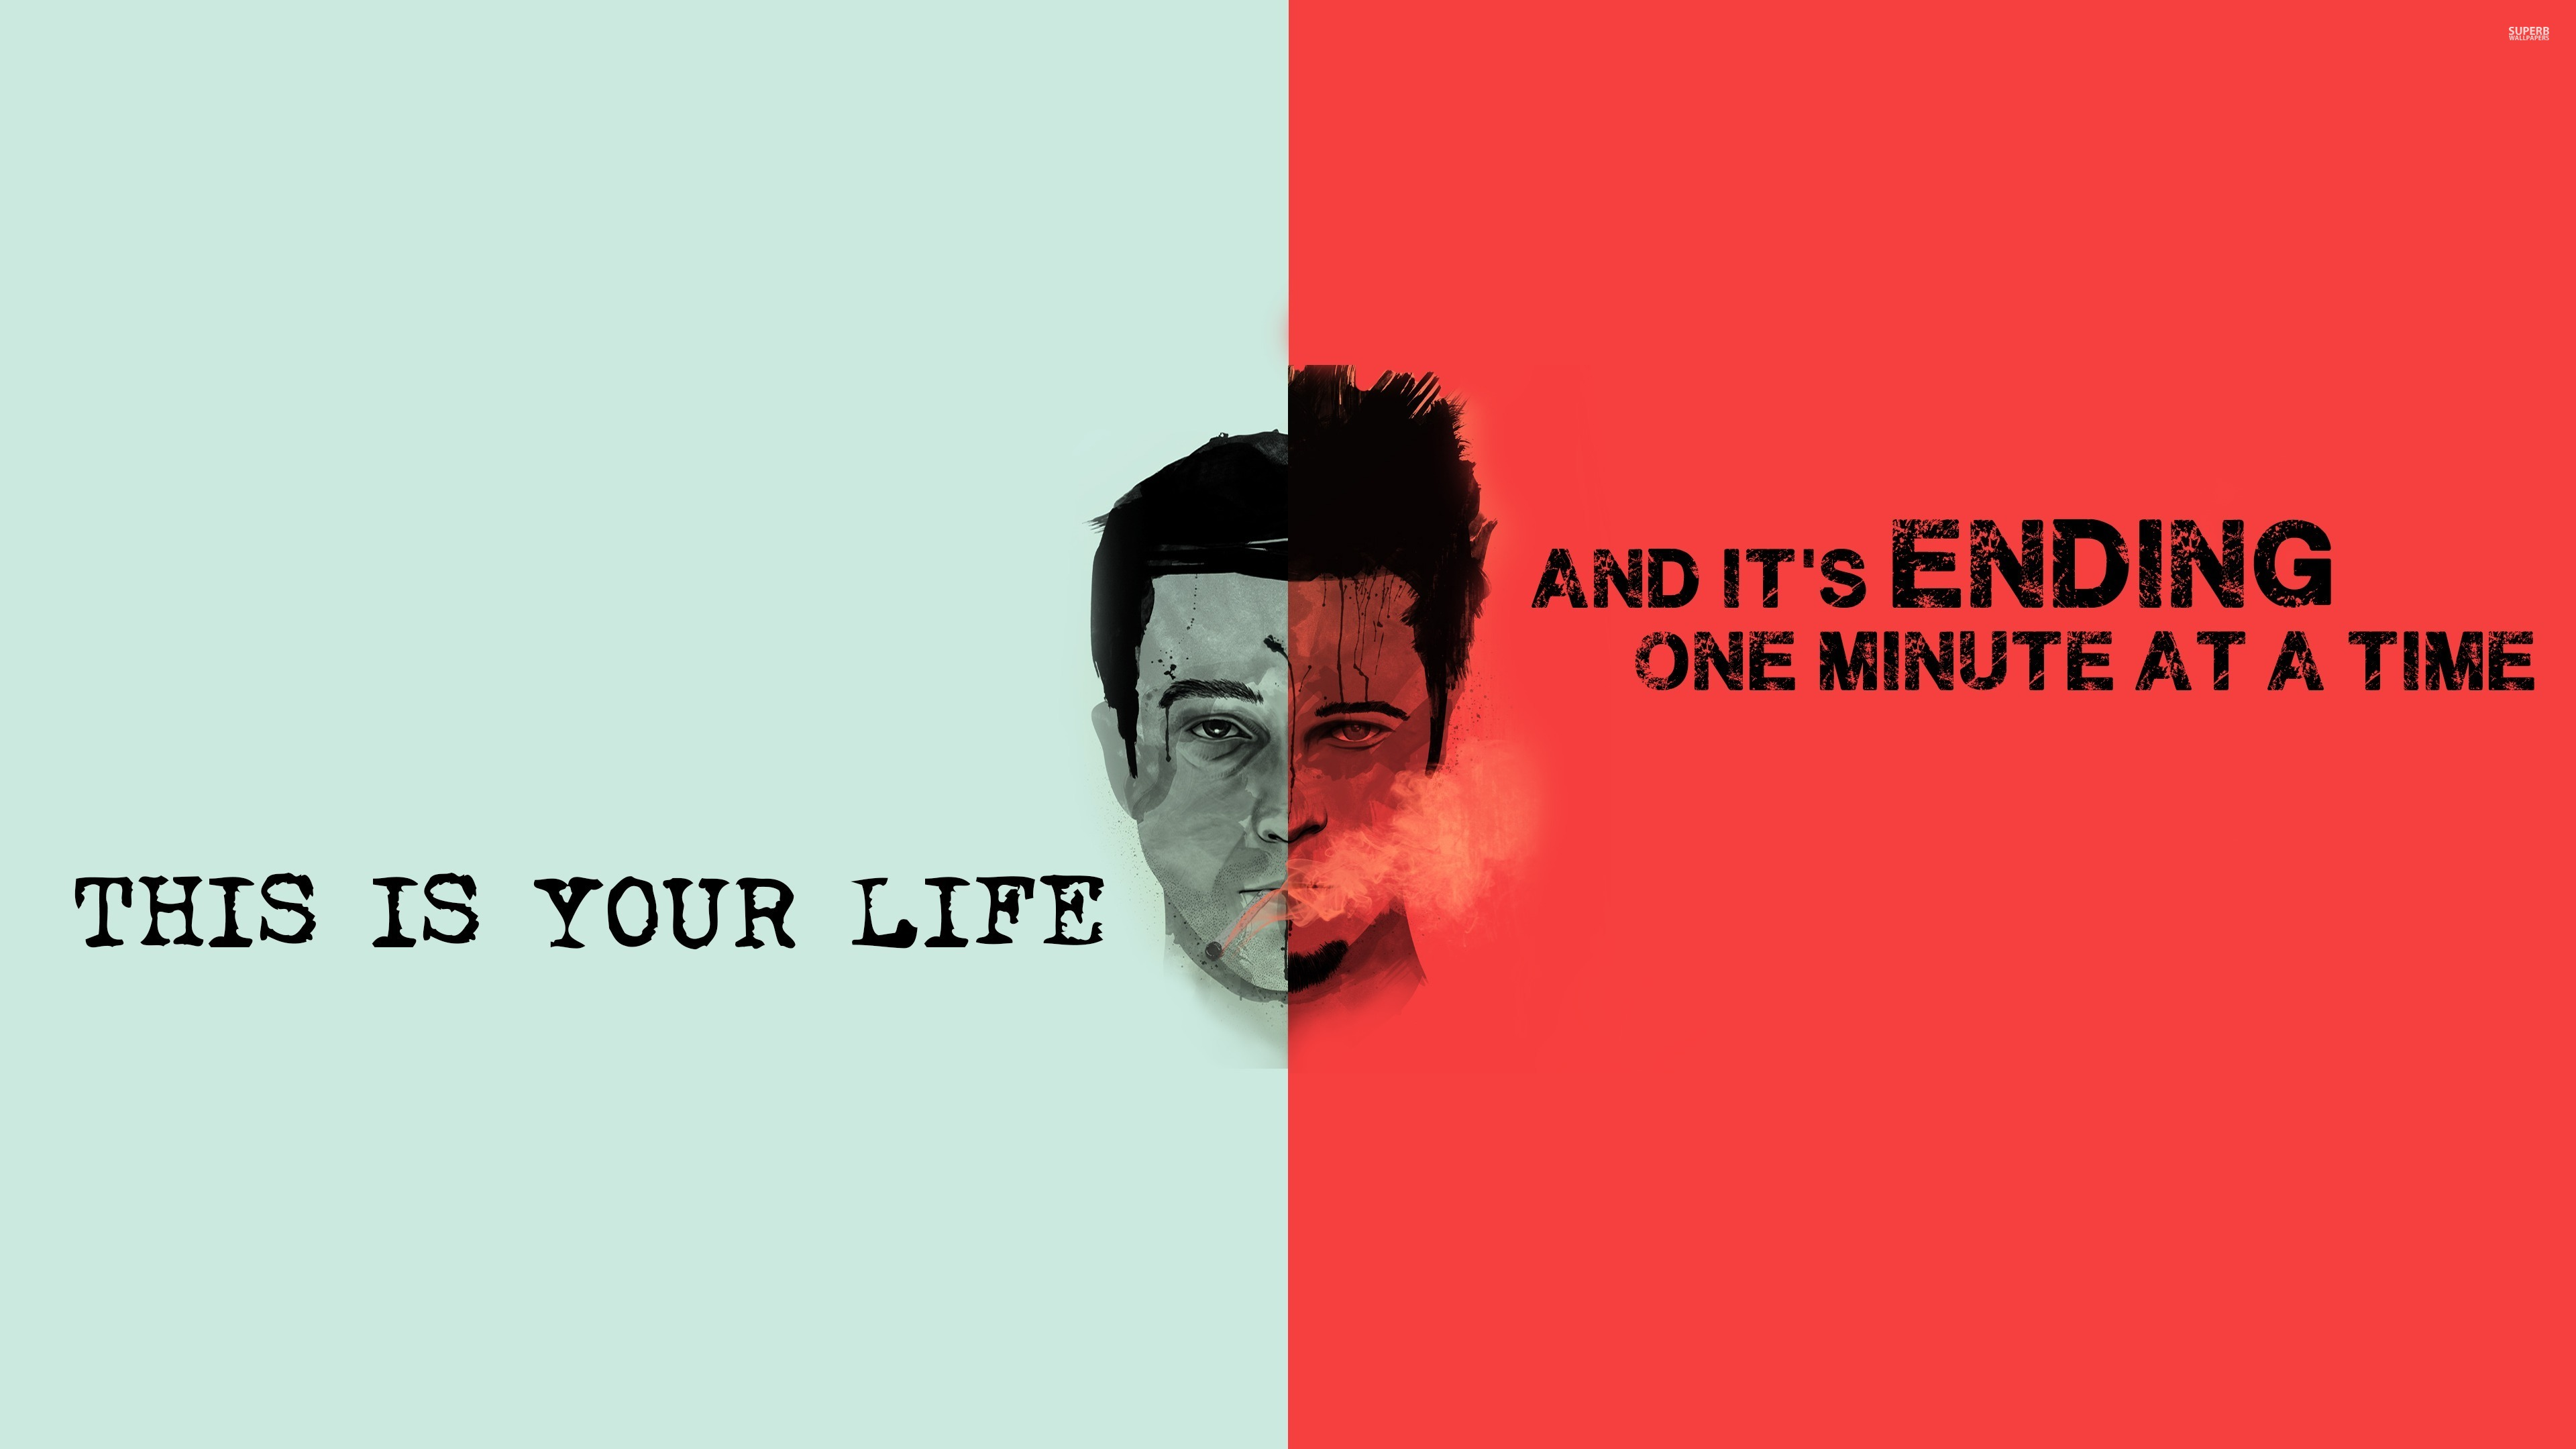 Fight Club wallpaper 3840x2160